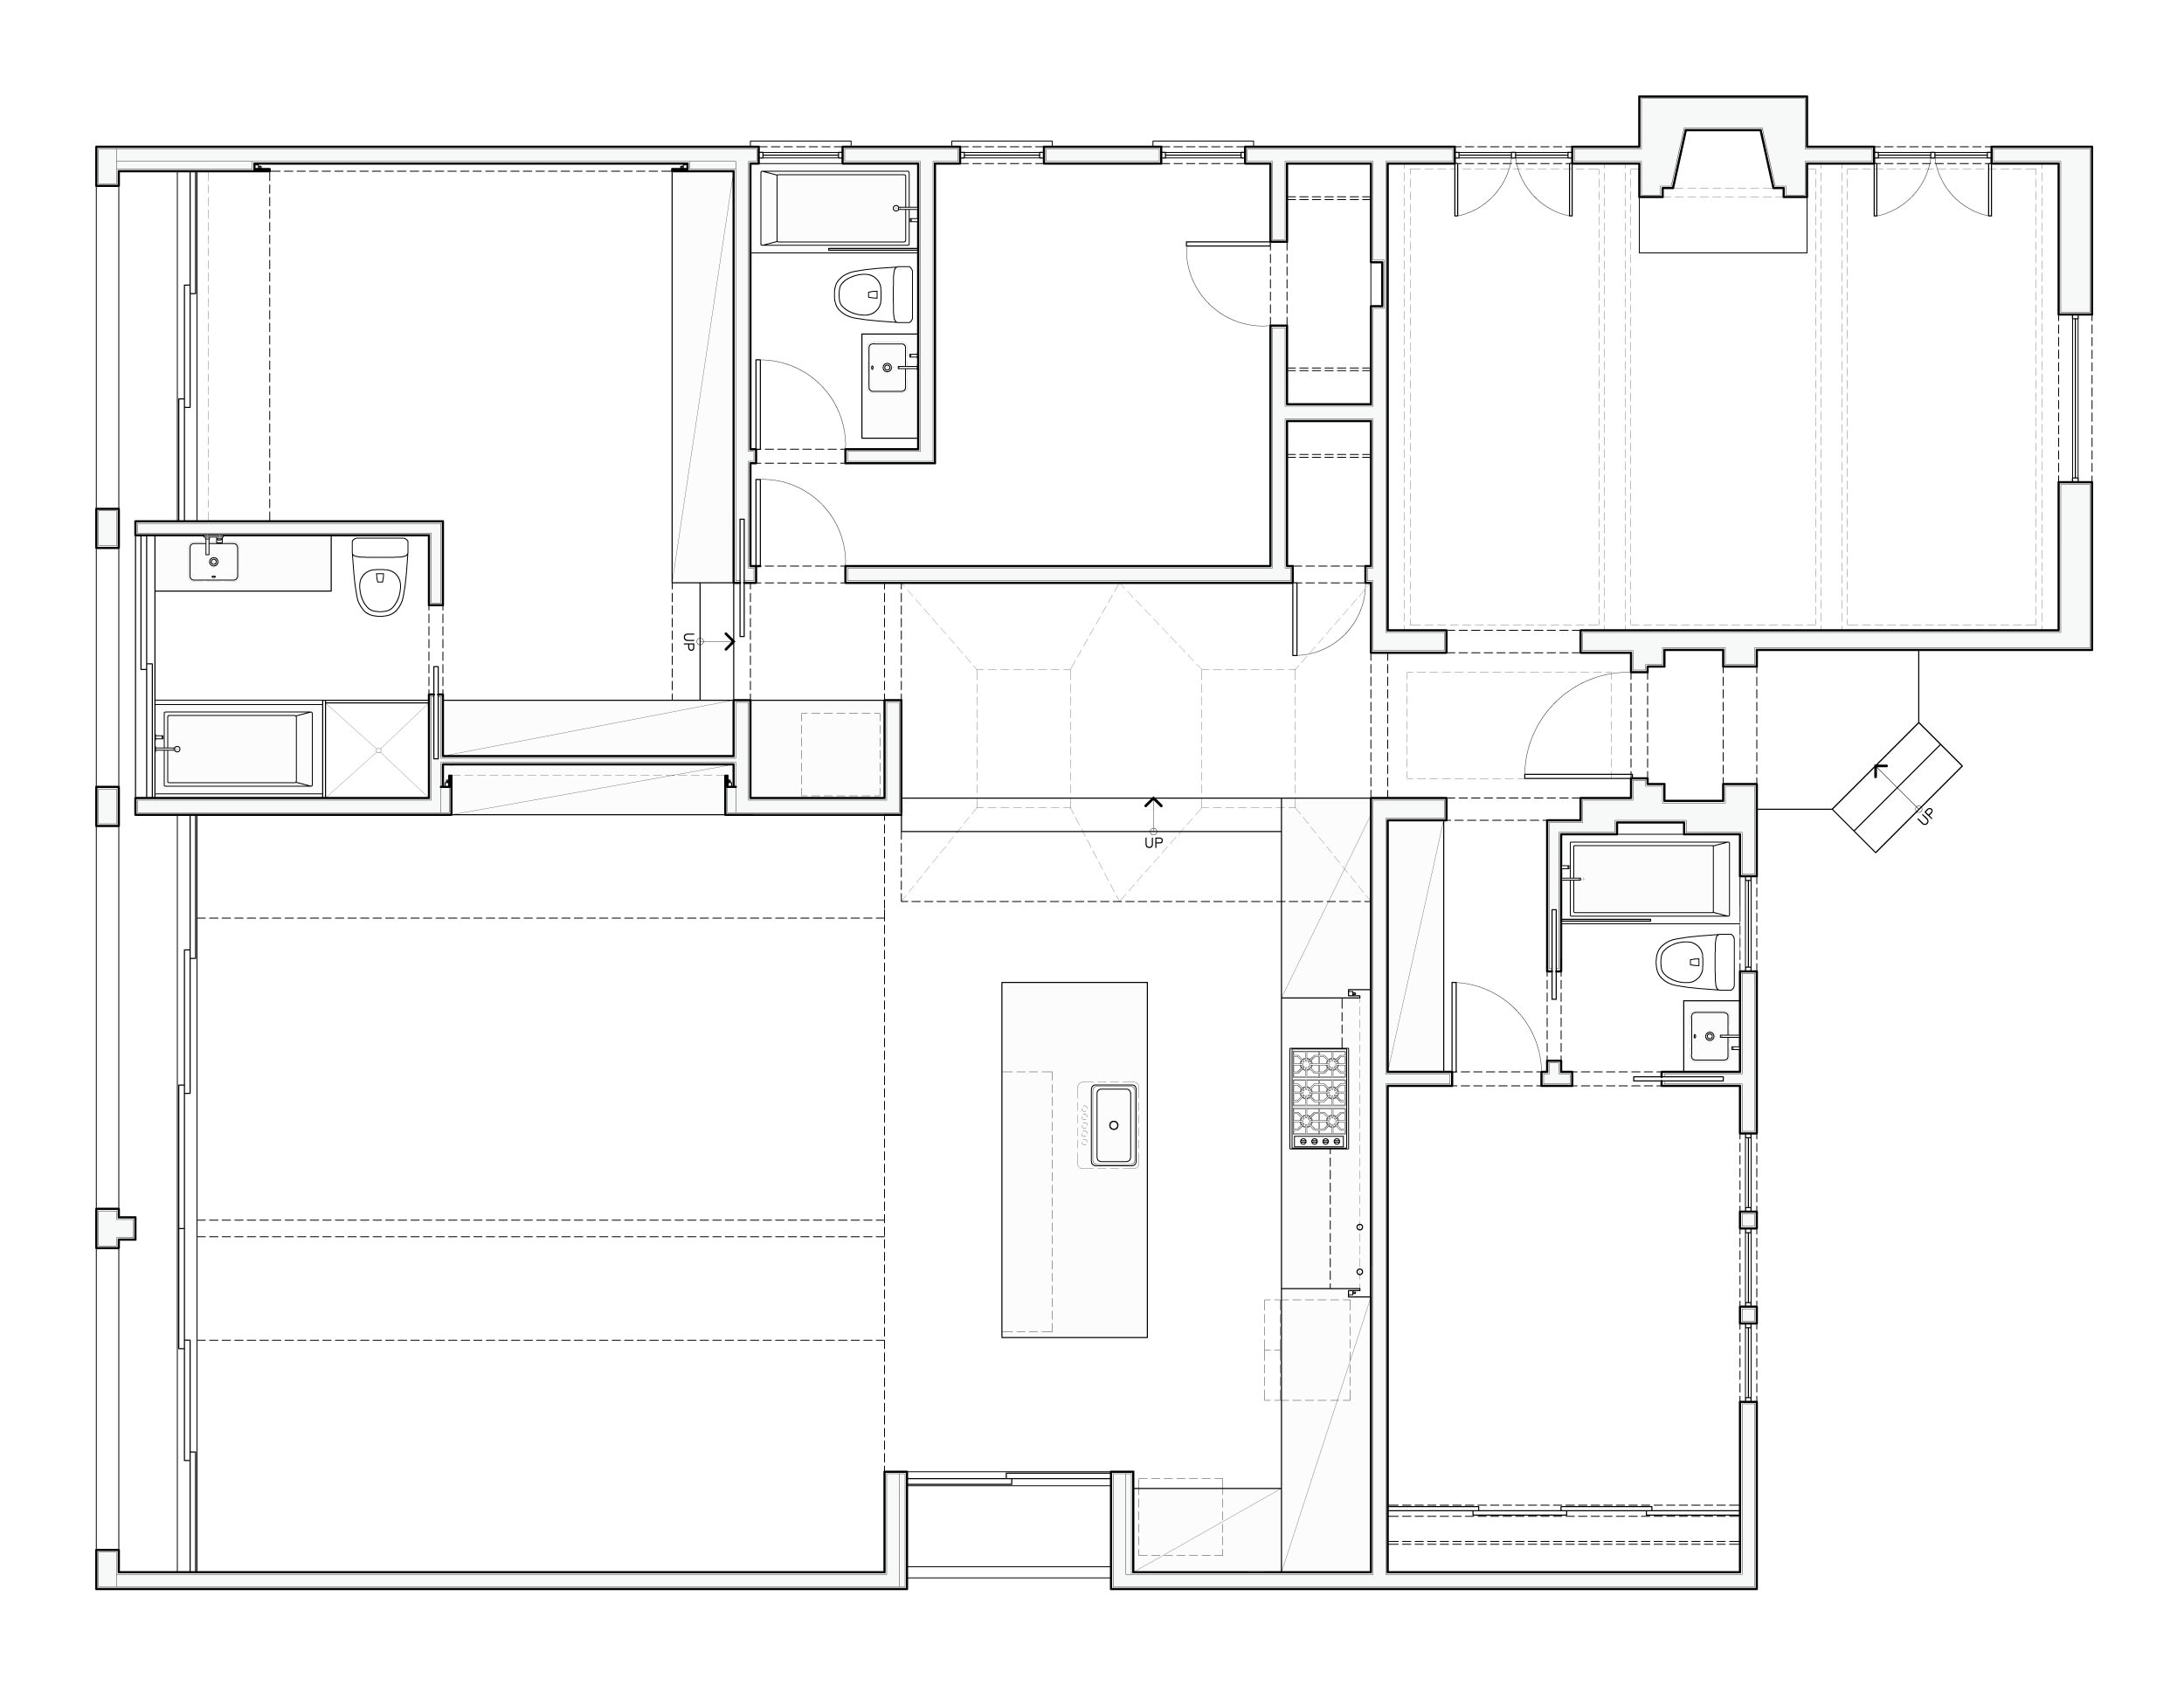 Proposed plan showing the kitchen and living room that opens to the rear yard and pool.